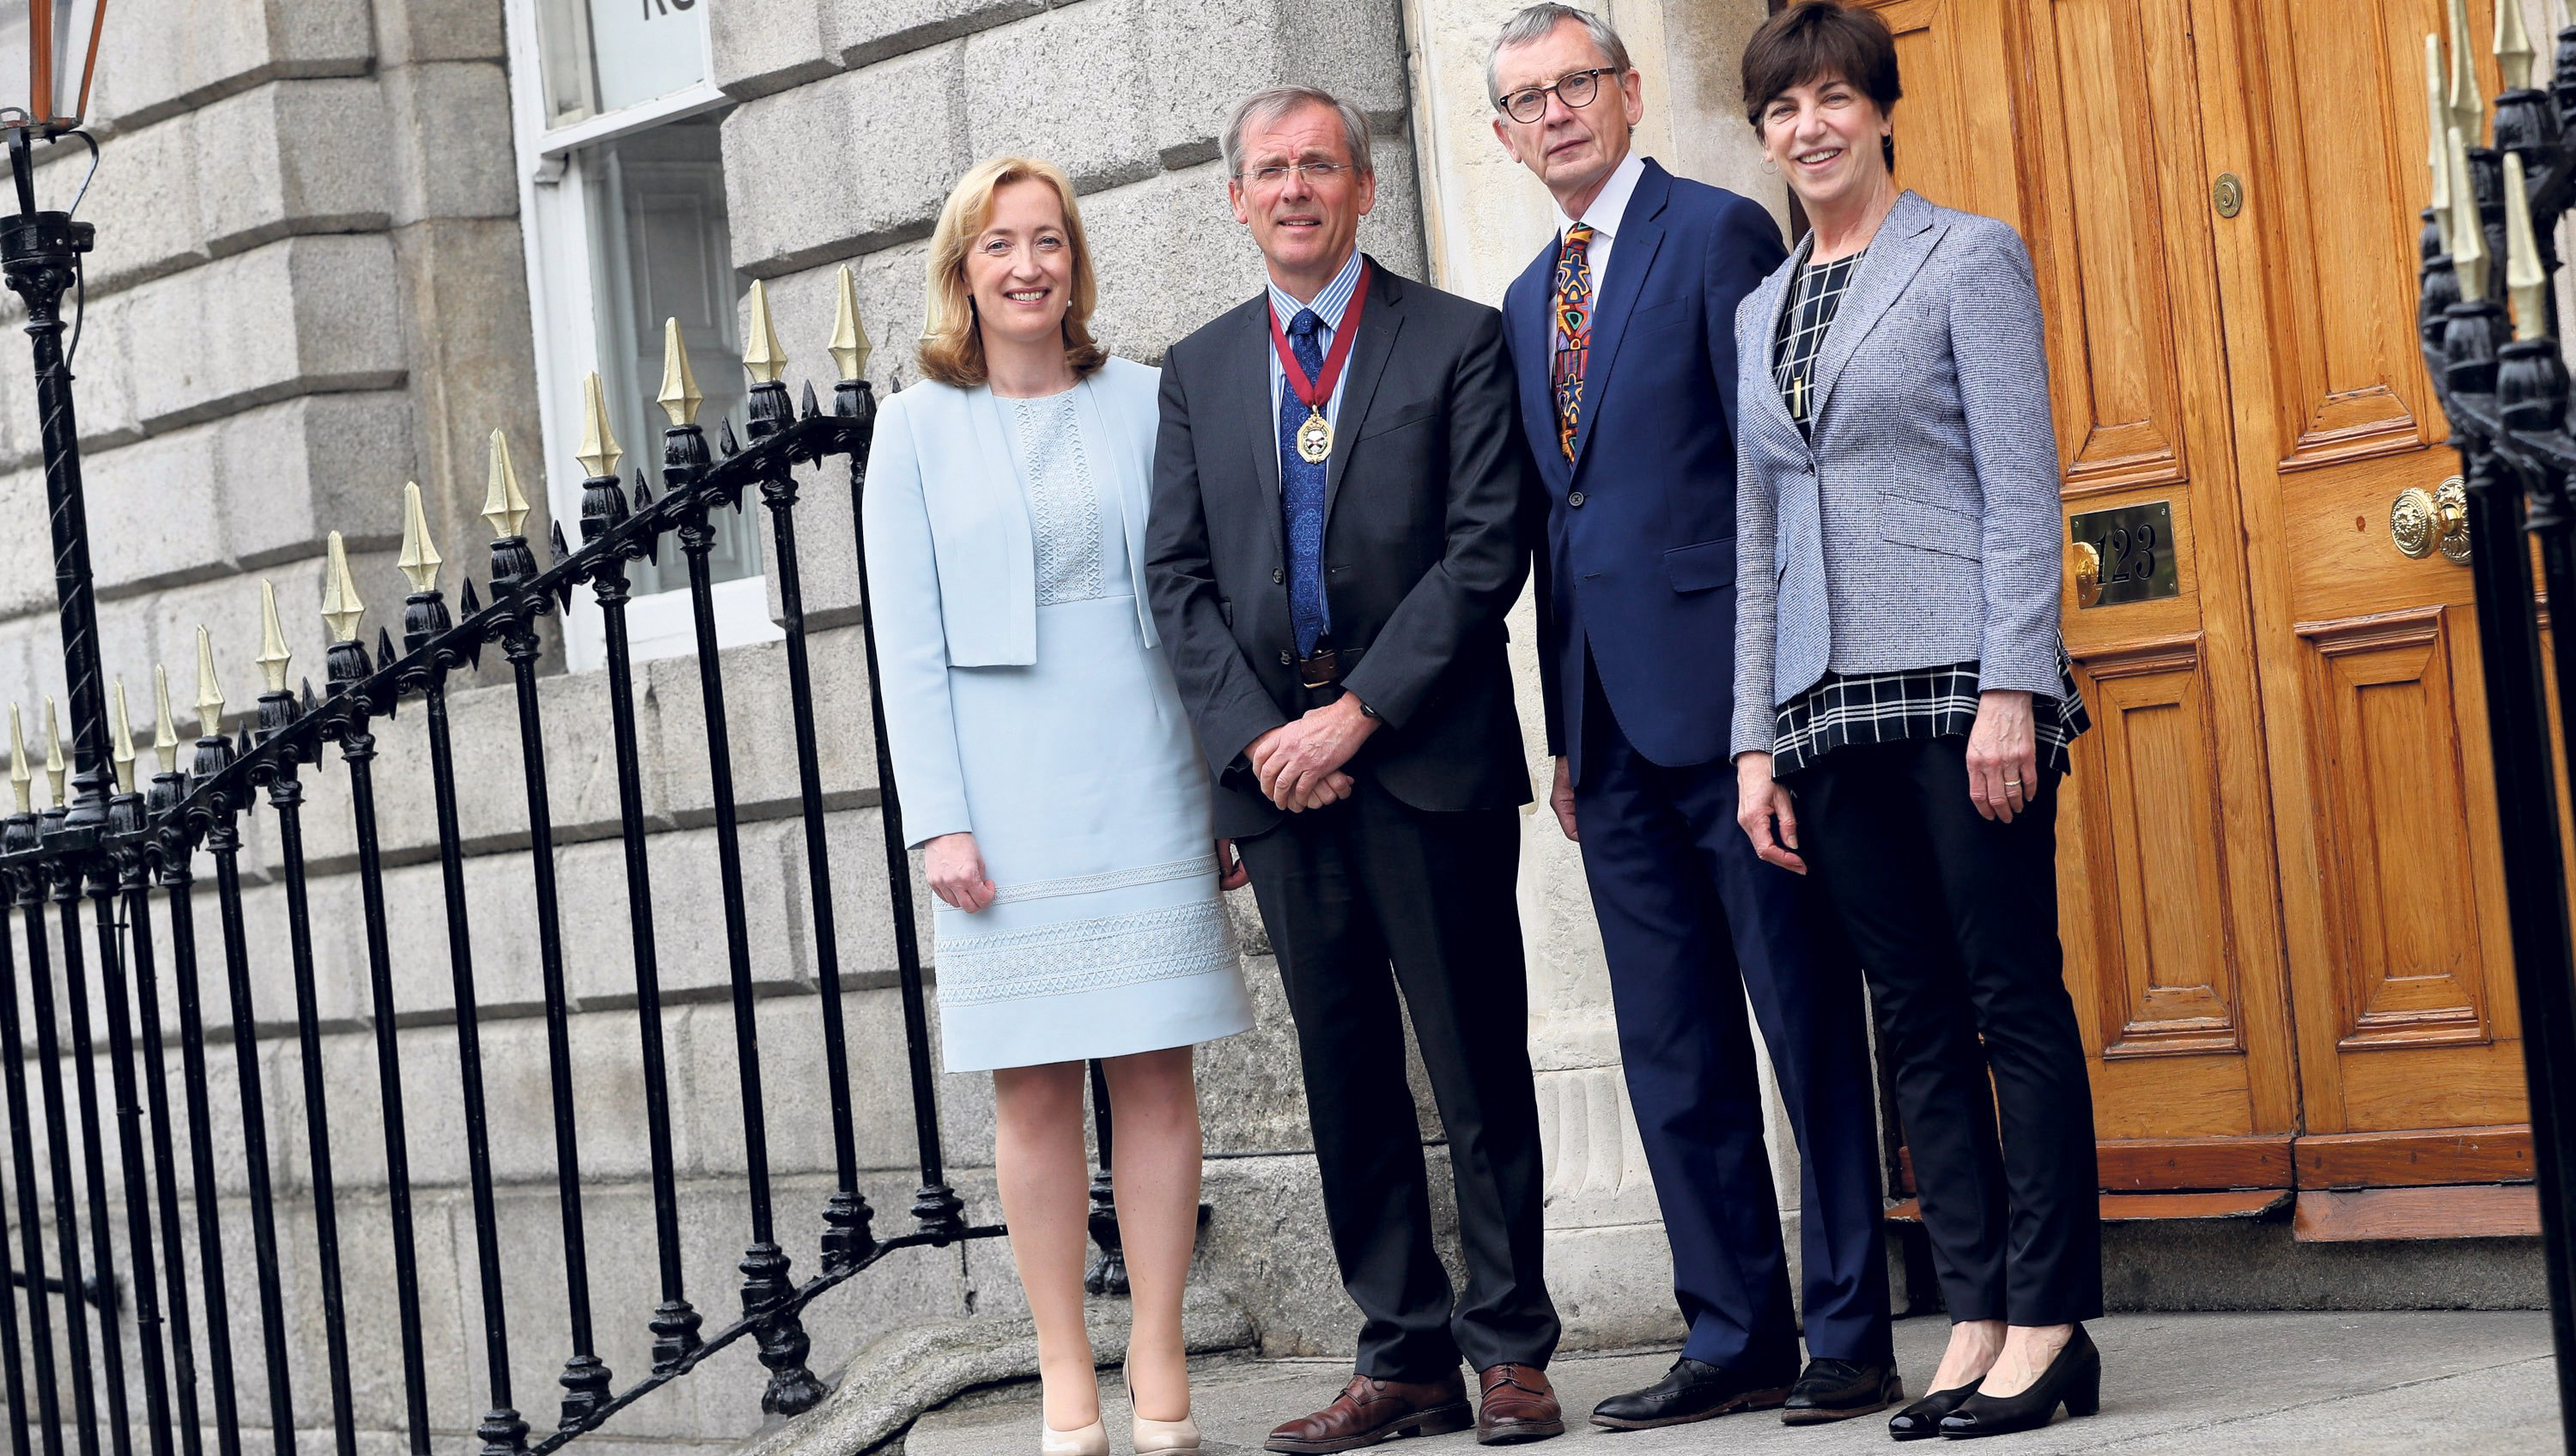 09-07-2019 NO REPRO FEE MAXWELLS DUBLIN  National Conference on open disclosure and medical professionalism at RCSI  PIC SHOWS:Pictured ahead of the national conference on open disclosure and medical professionalism at RCSI today are Prof Dubhfeasa Slattery, RCSI and BSHS Chair in Medical Professionalism, Mr Kenneth Mealy, RCSI President, Dr Gabriel Scally, author of the scoping inquiry into the CervicalCheck Screening Programme and Prof Jo Shapiro, surgeon at Boston's Brigham and Women's Hospital and Associate Professor of Otolaryngology at Harvard Medical School. RCSI is a leader nationally in professionalism, incorporating it as a key theme throughout the undergraduate curriculum and providing postgraduate training opportunities for multi-disciplinary healthcare professionals' education. PIC: NO FEE, MAXWELLPHOTOGRAPHY.IE